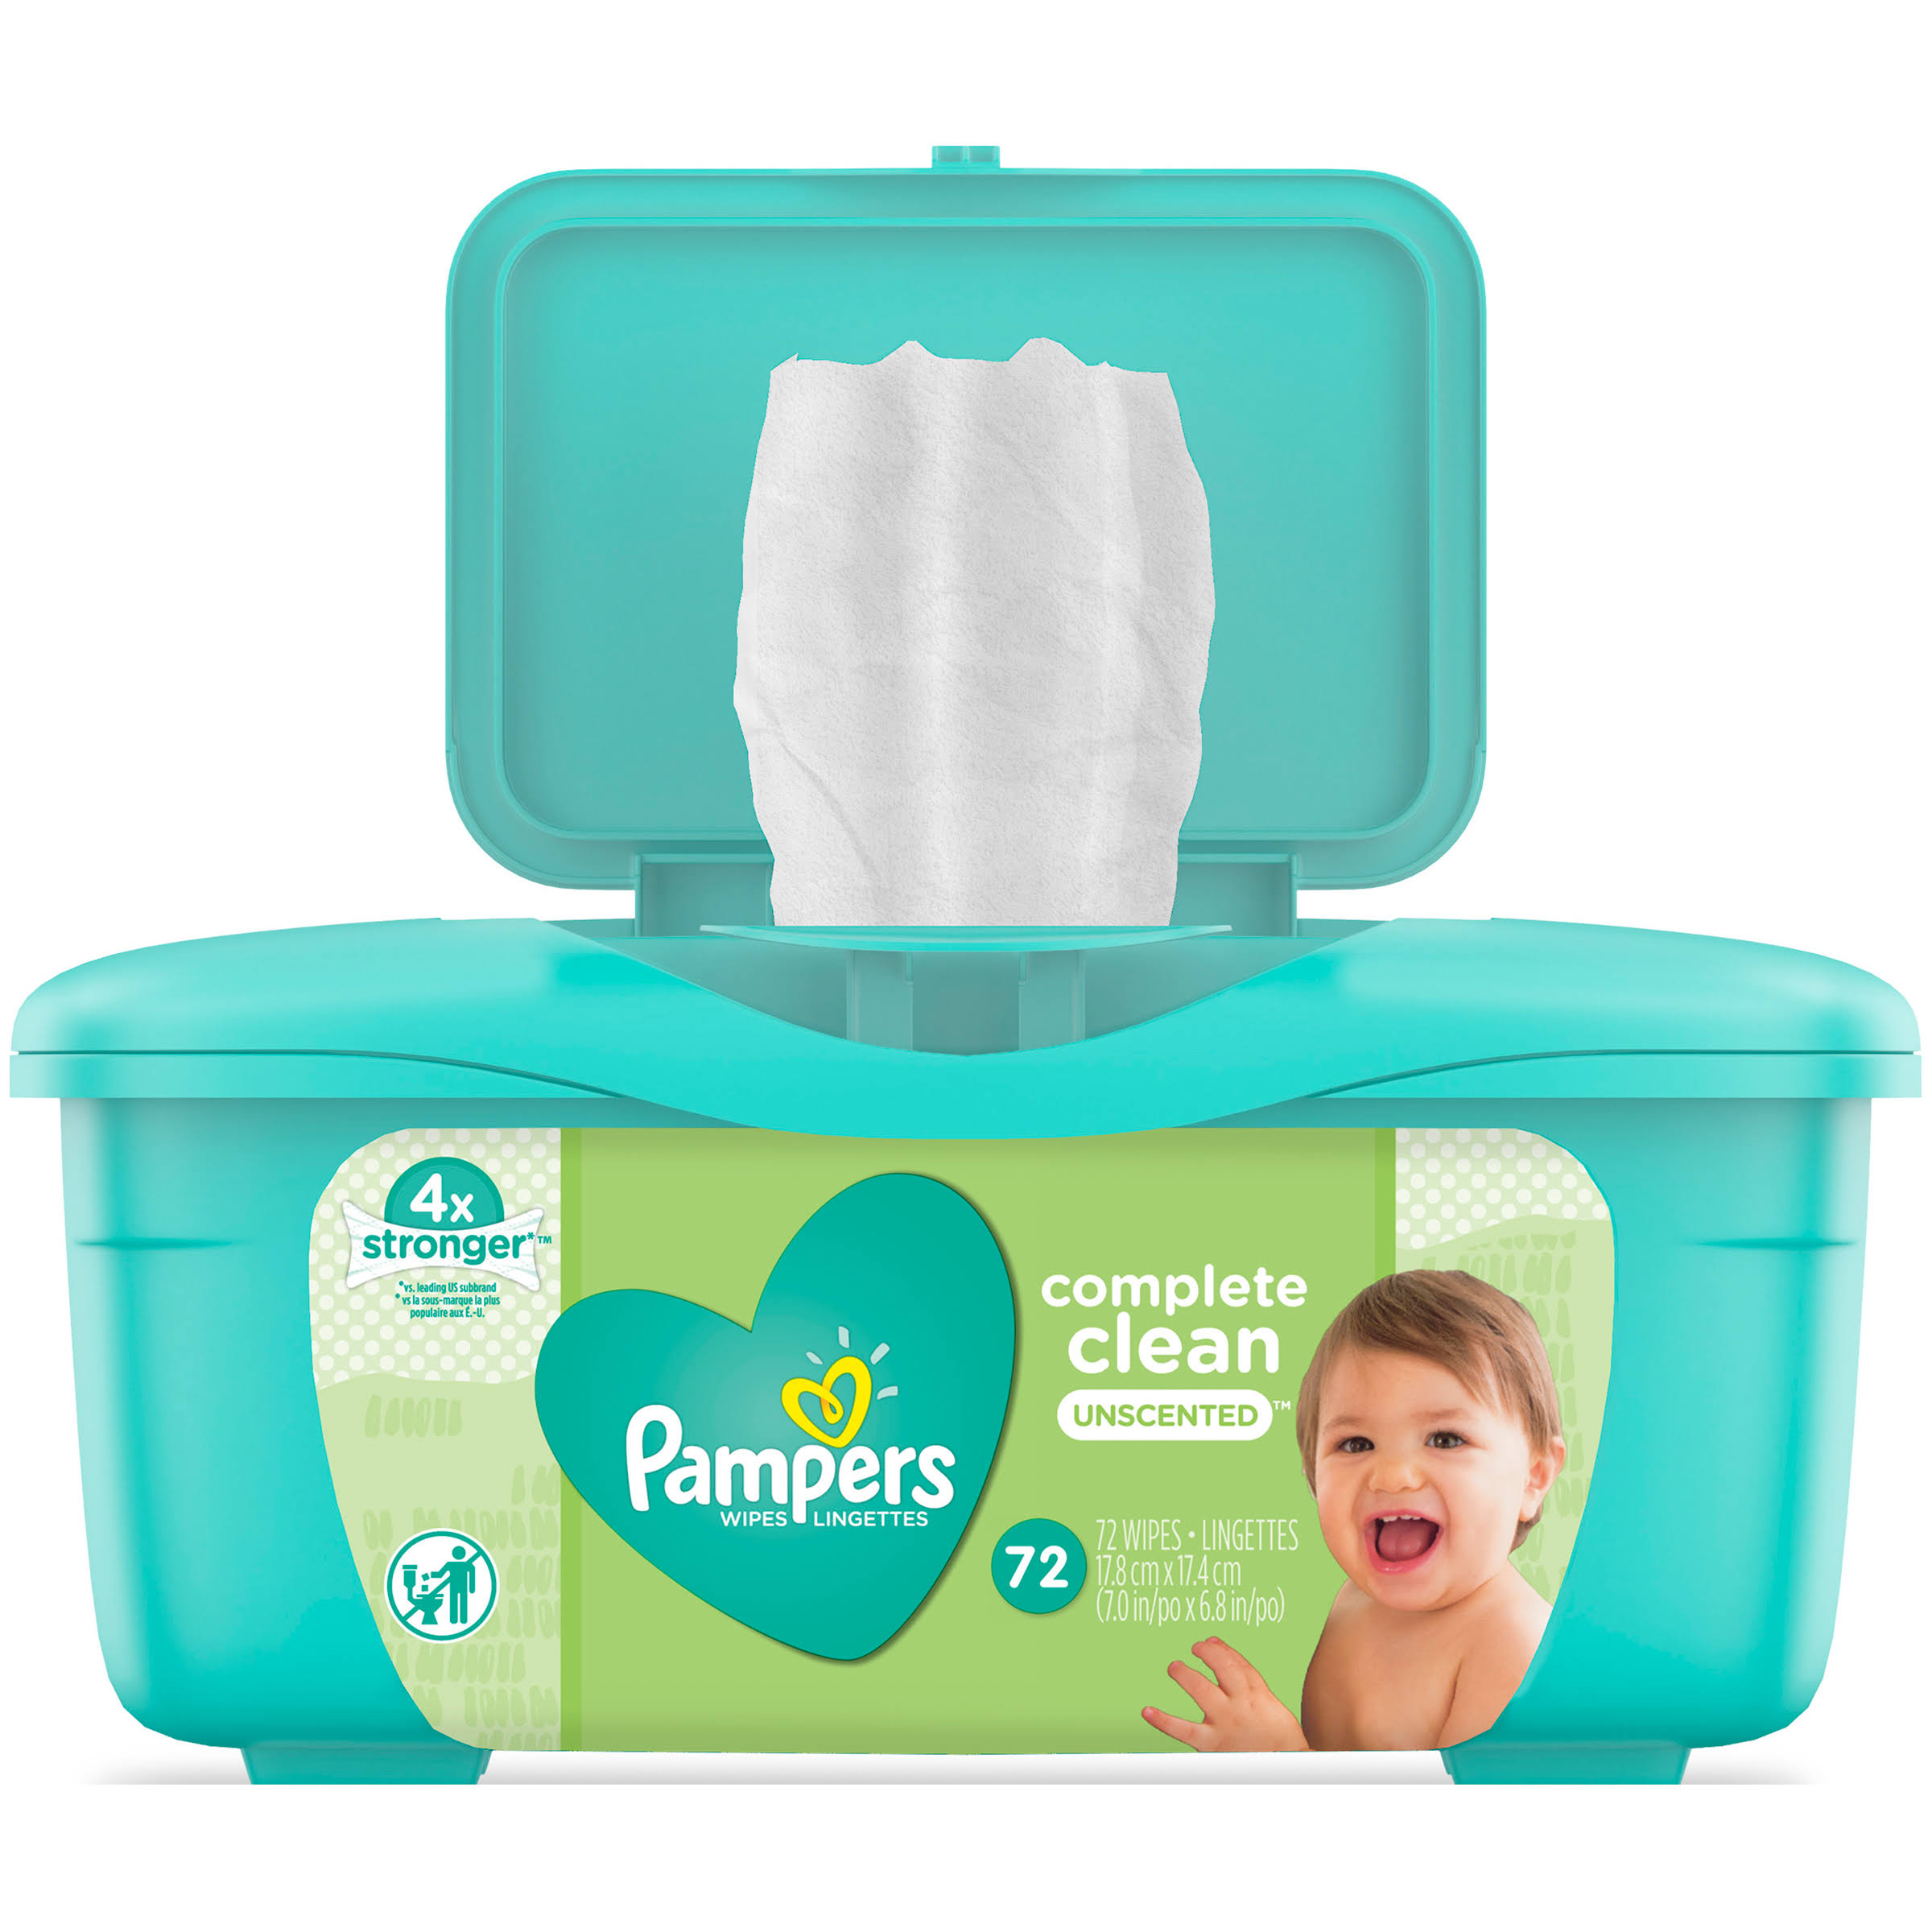 Pampers Complete Clean Baby Wipes - Unscented, 72ct